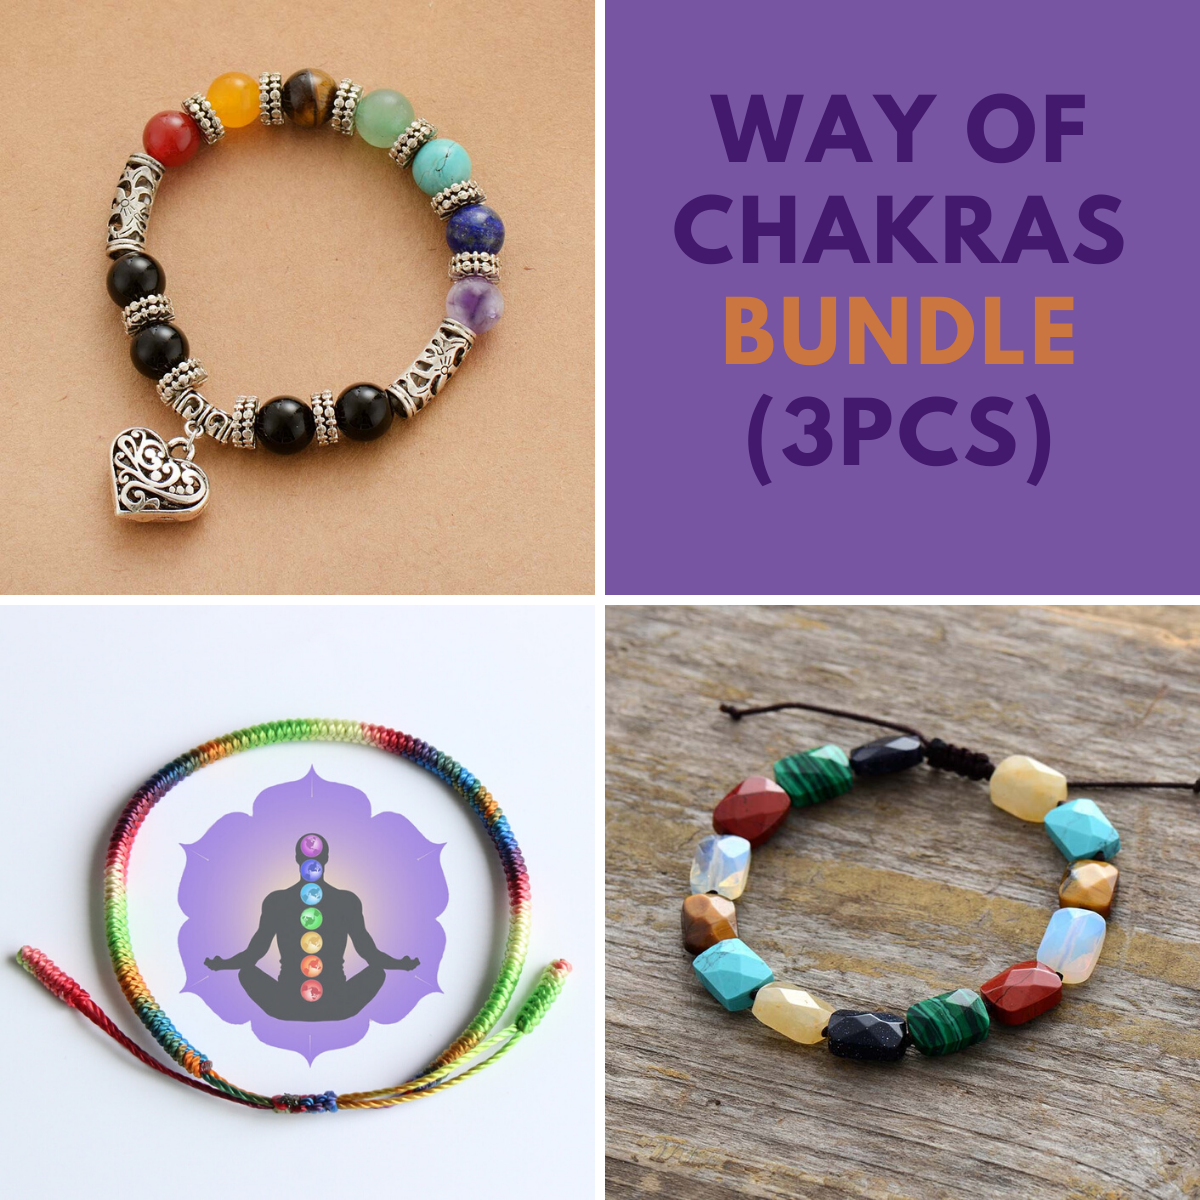 Way of Chakras Bundle